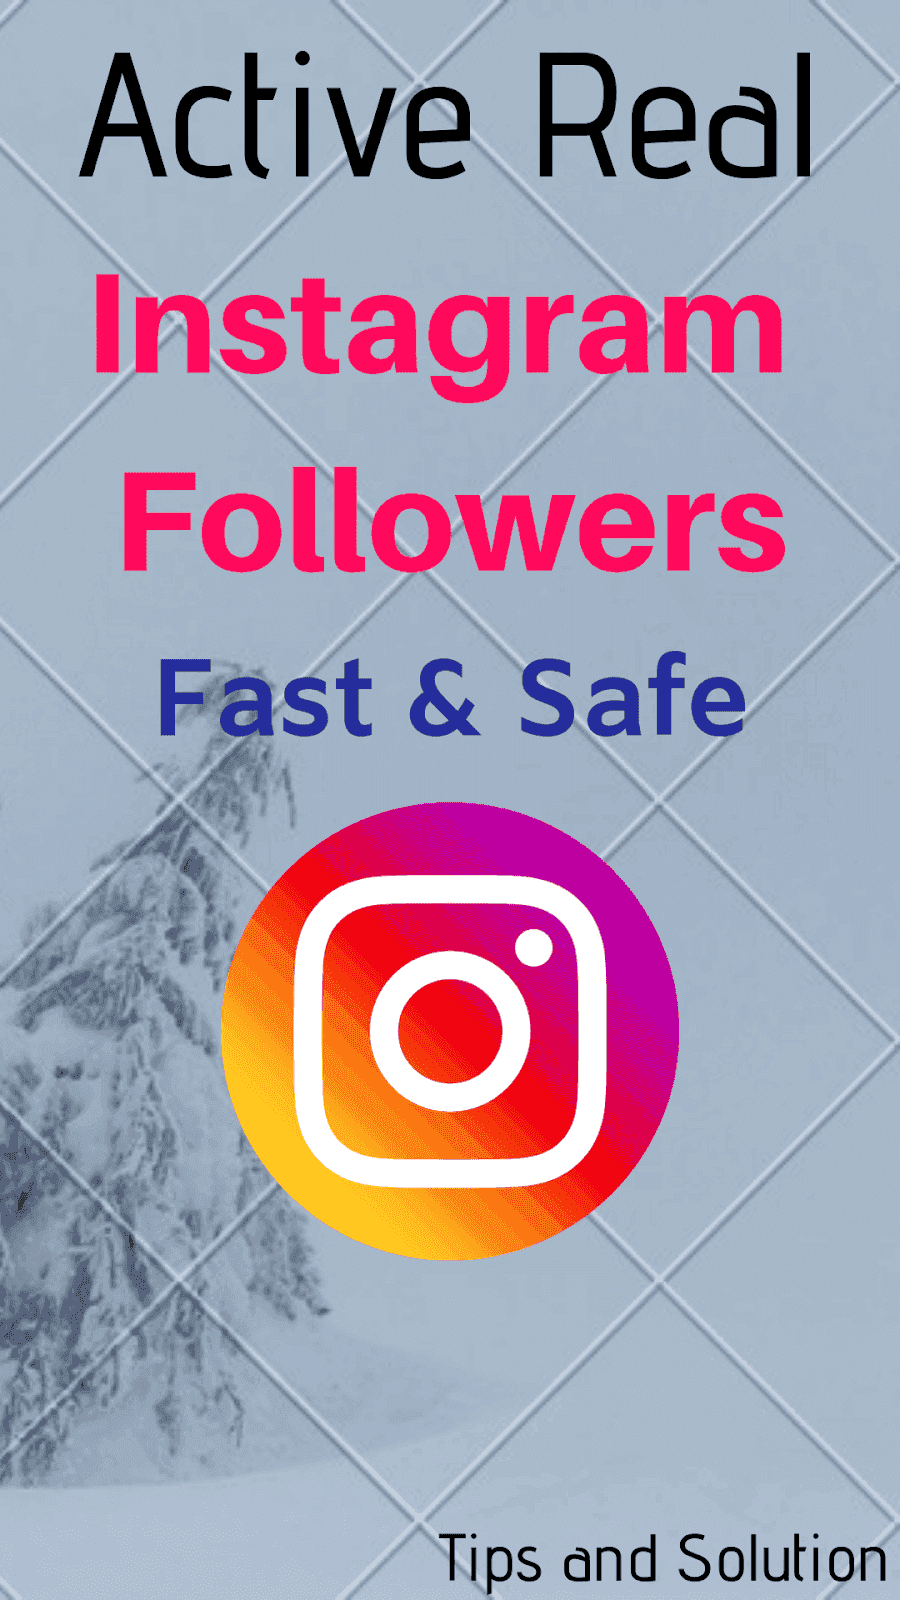 Active Real Instagram Followers Fast and Safe